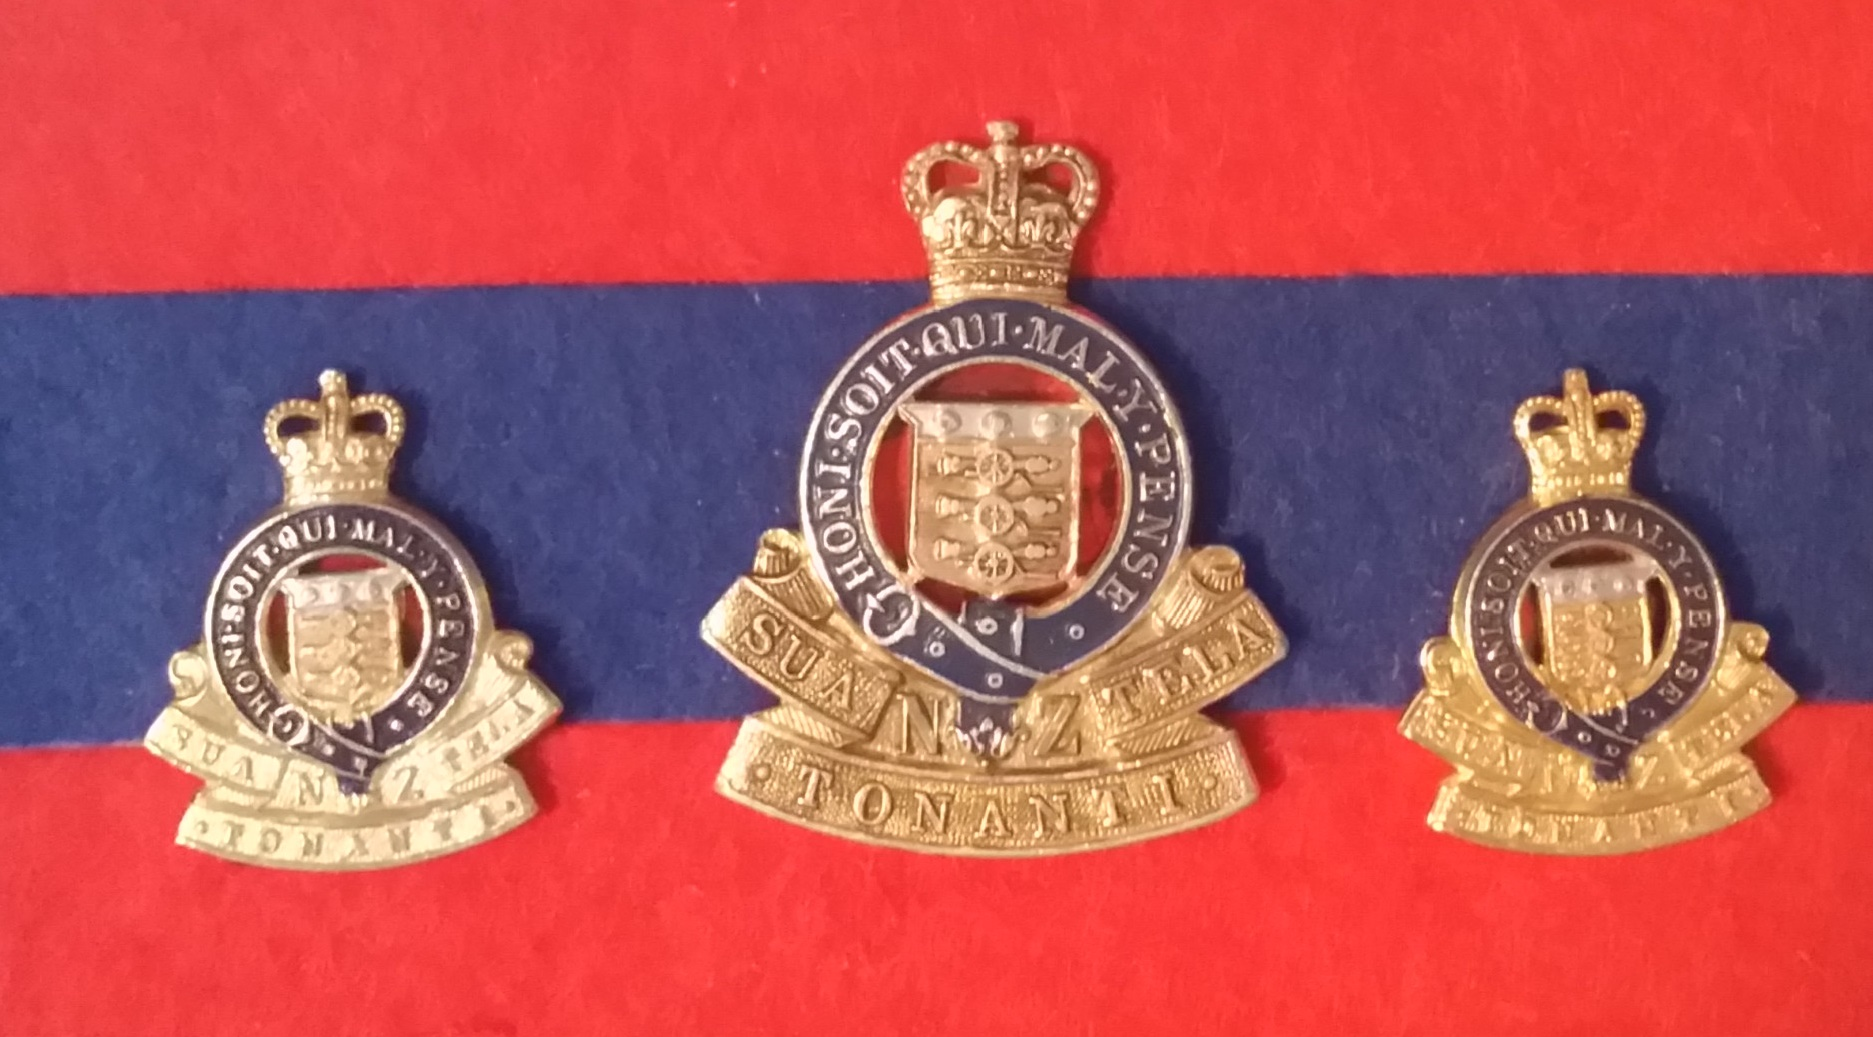 RNZAOC GILT, annodised coloured 1955-1996